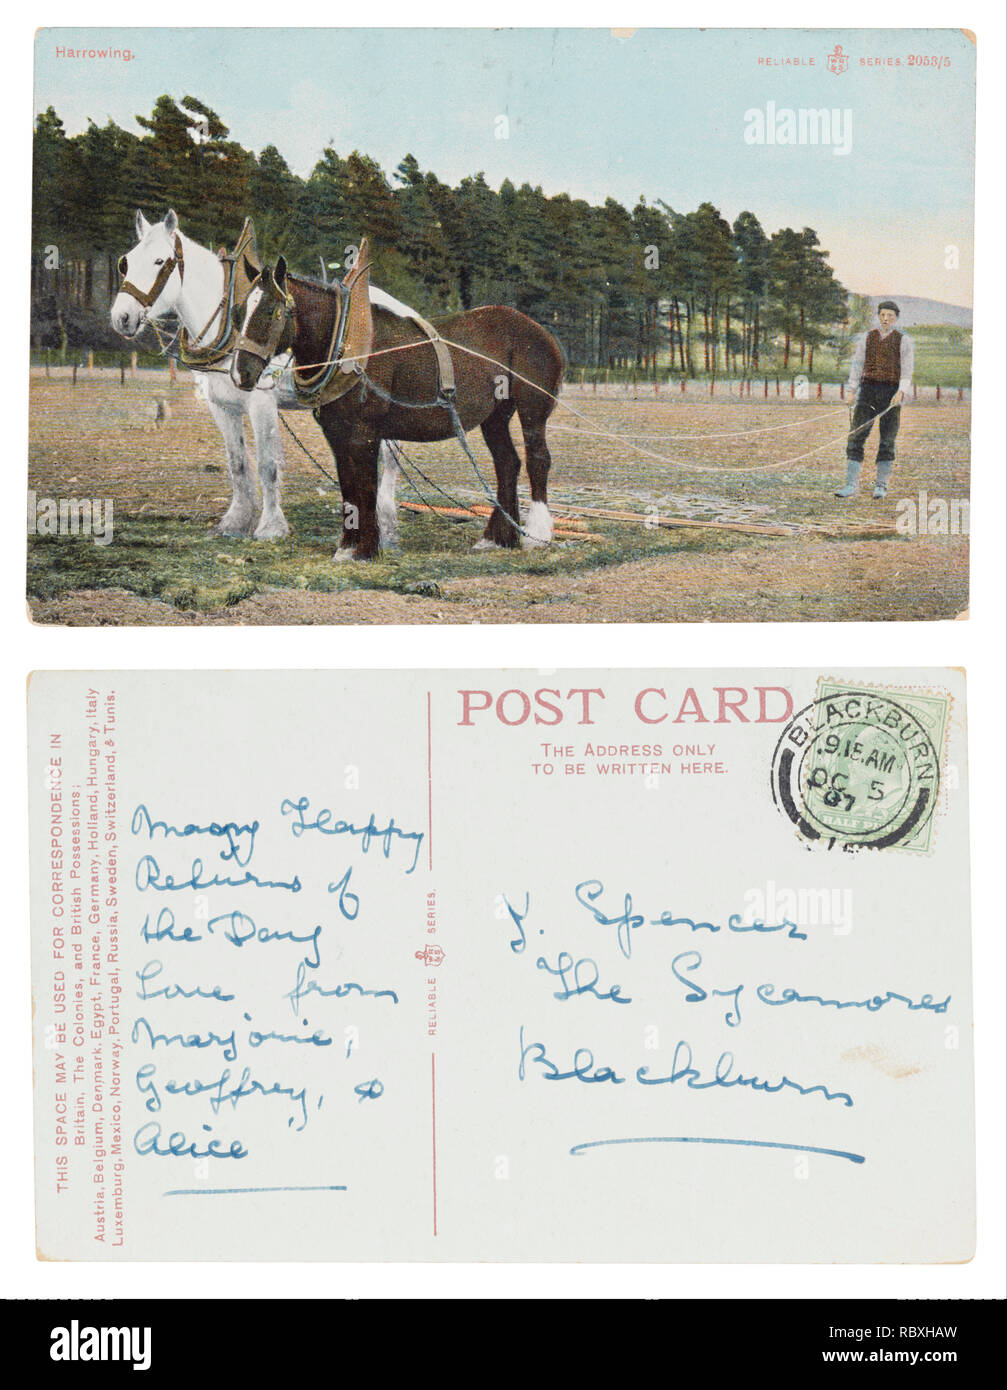 Postcard of farm boy harrowing sent from Blackburn to J Spencer, The Sycamores wishing many happy returns of the day - Stock Image